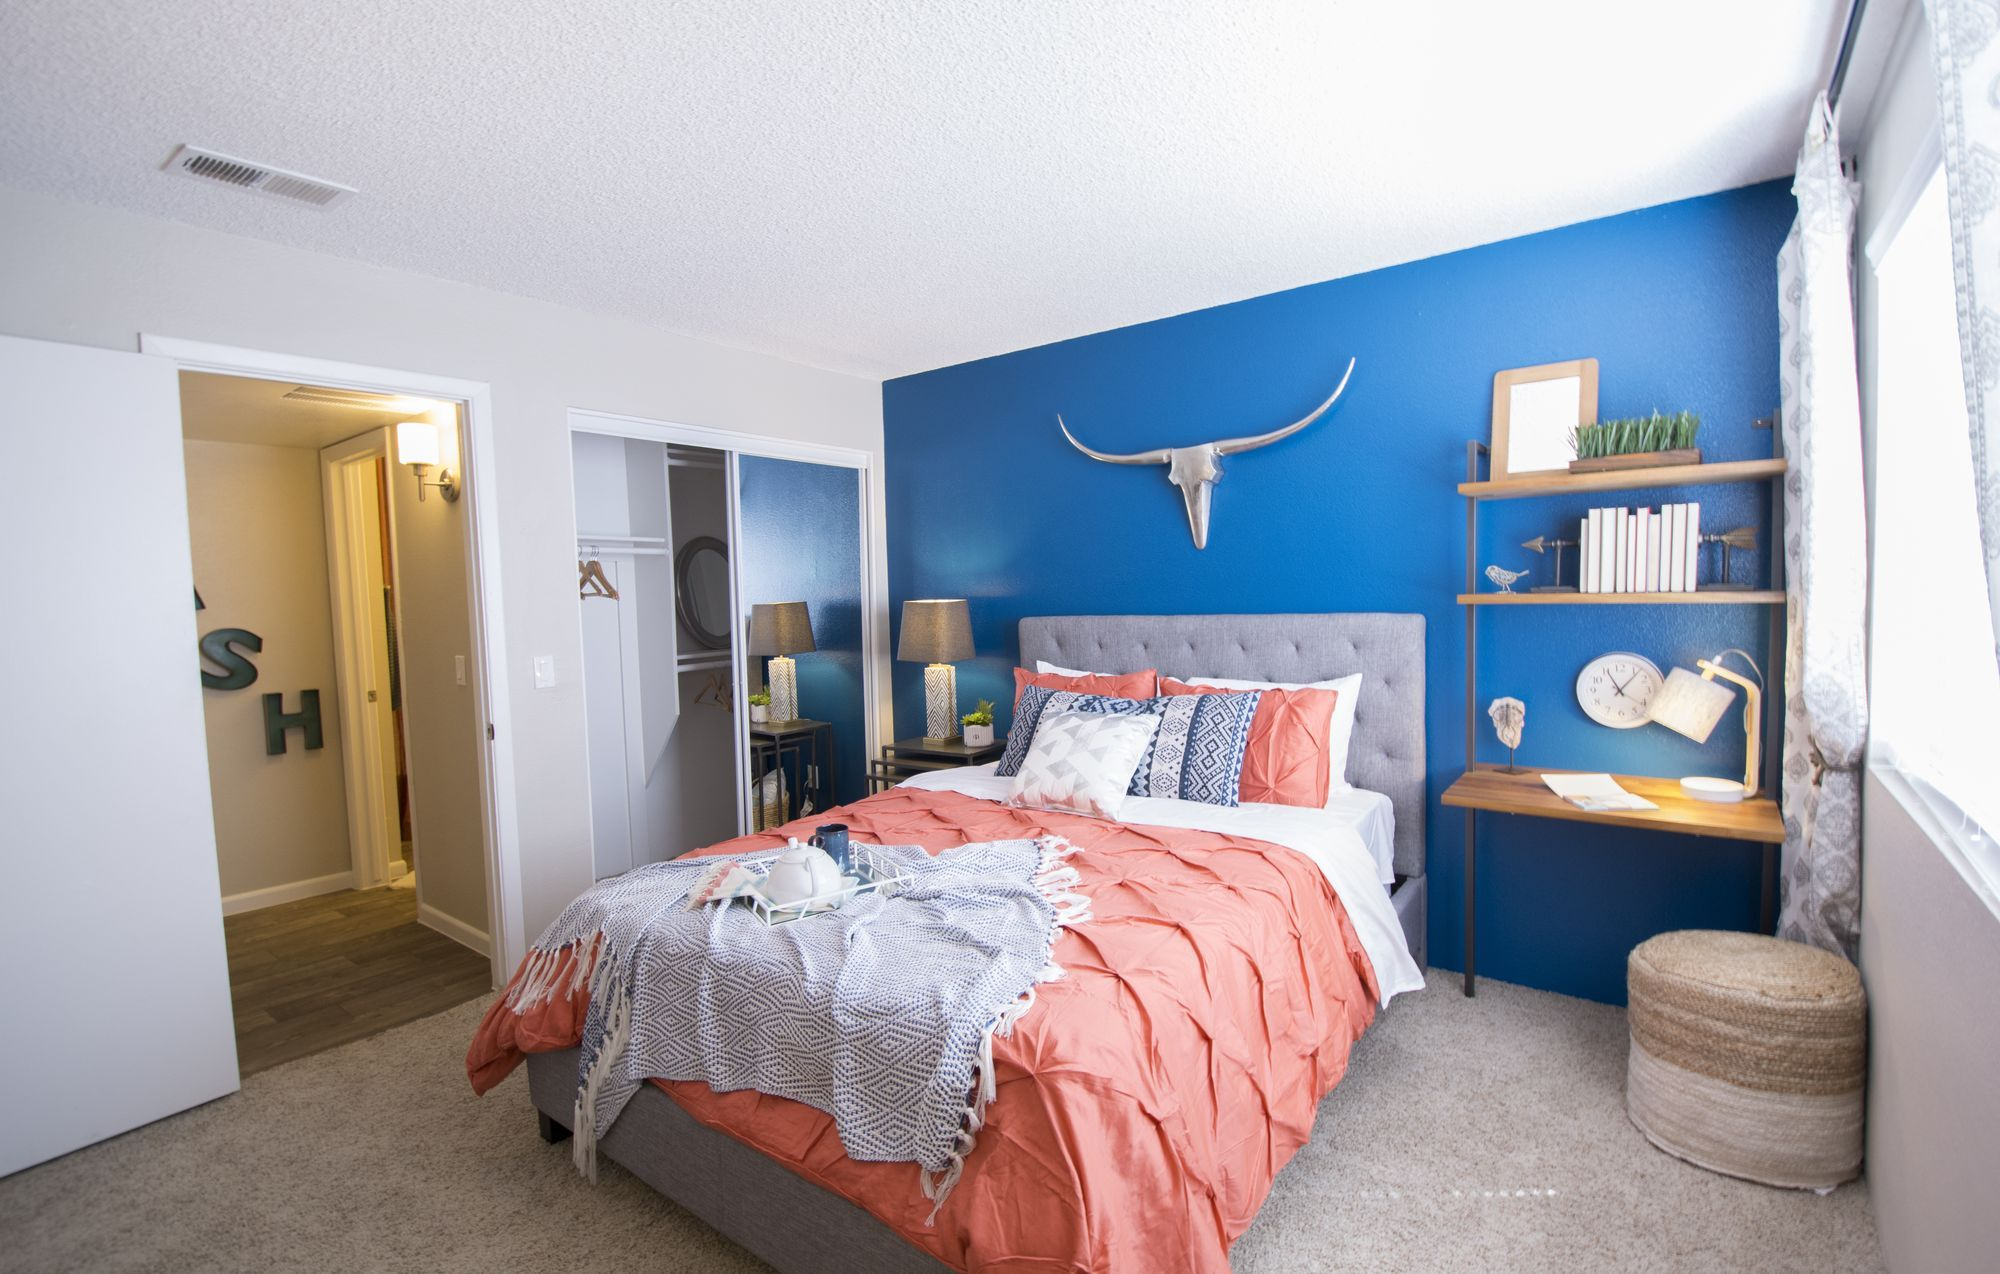 100 Best Apartments For Rent In Tucson, AZ (with pictures)!